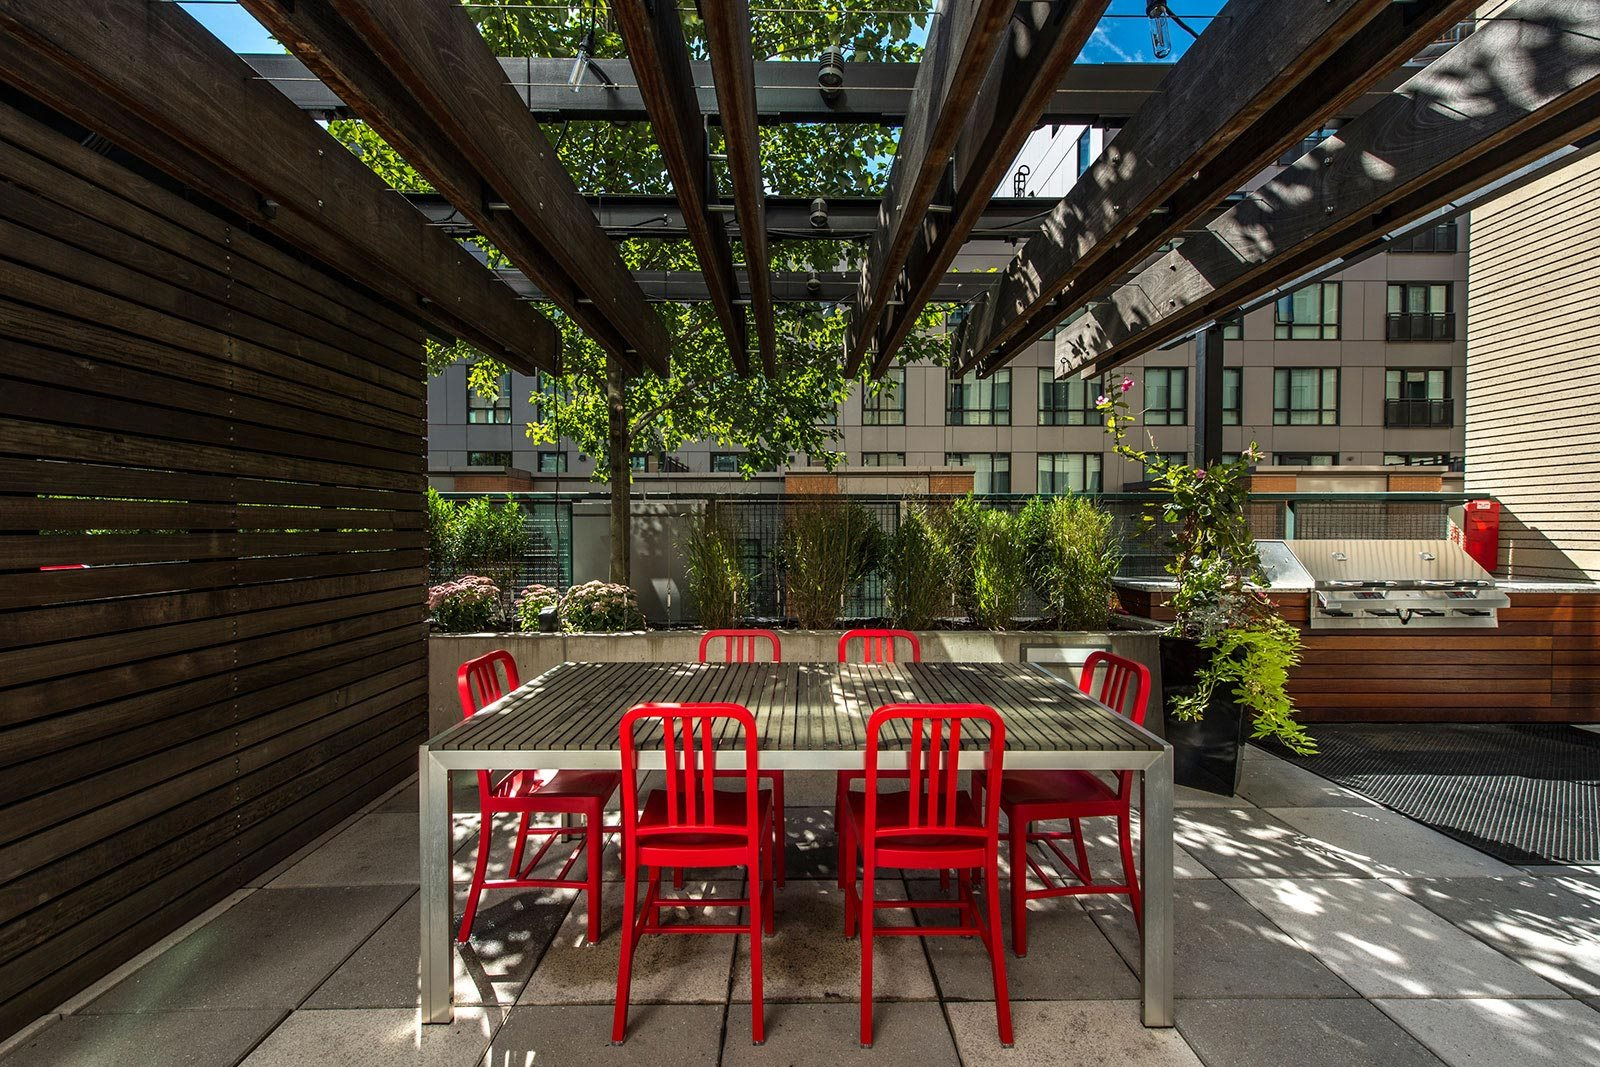 BBQ Grills and Outdoor Dining Area at The Victor by Windsor, 110 Beverly St, MA